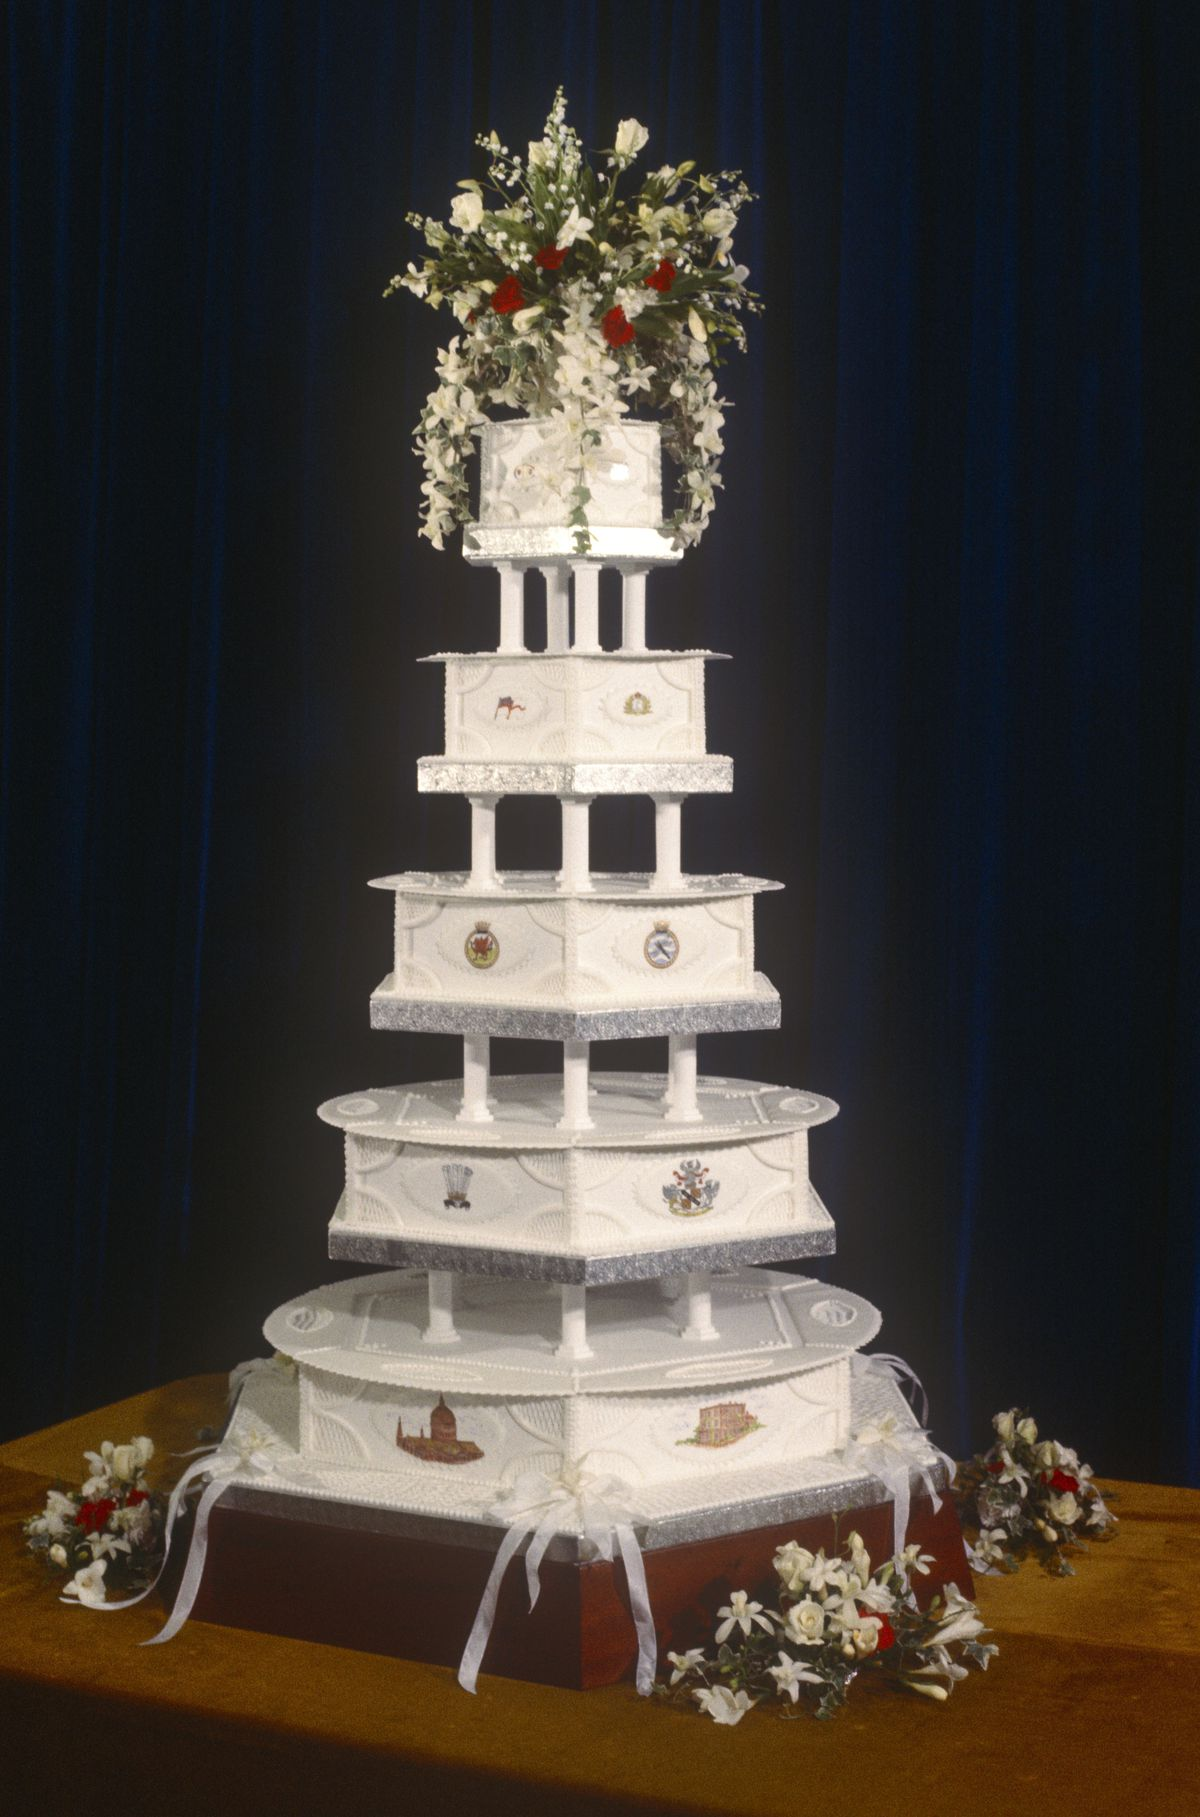 British Royal Wedding Cakes Over the Years - Eater